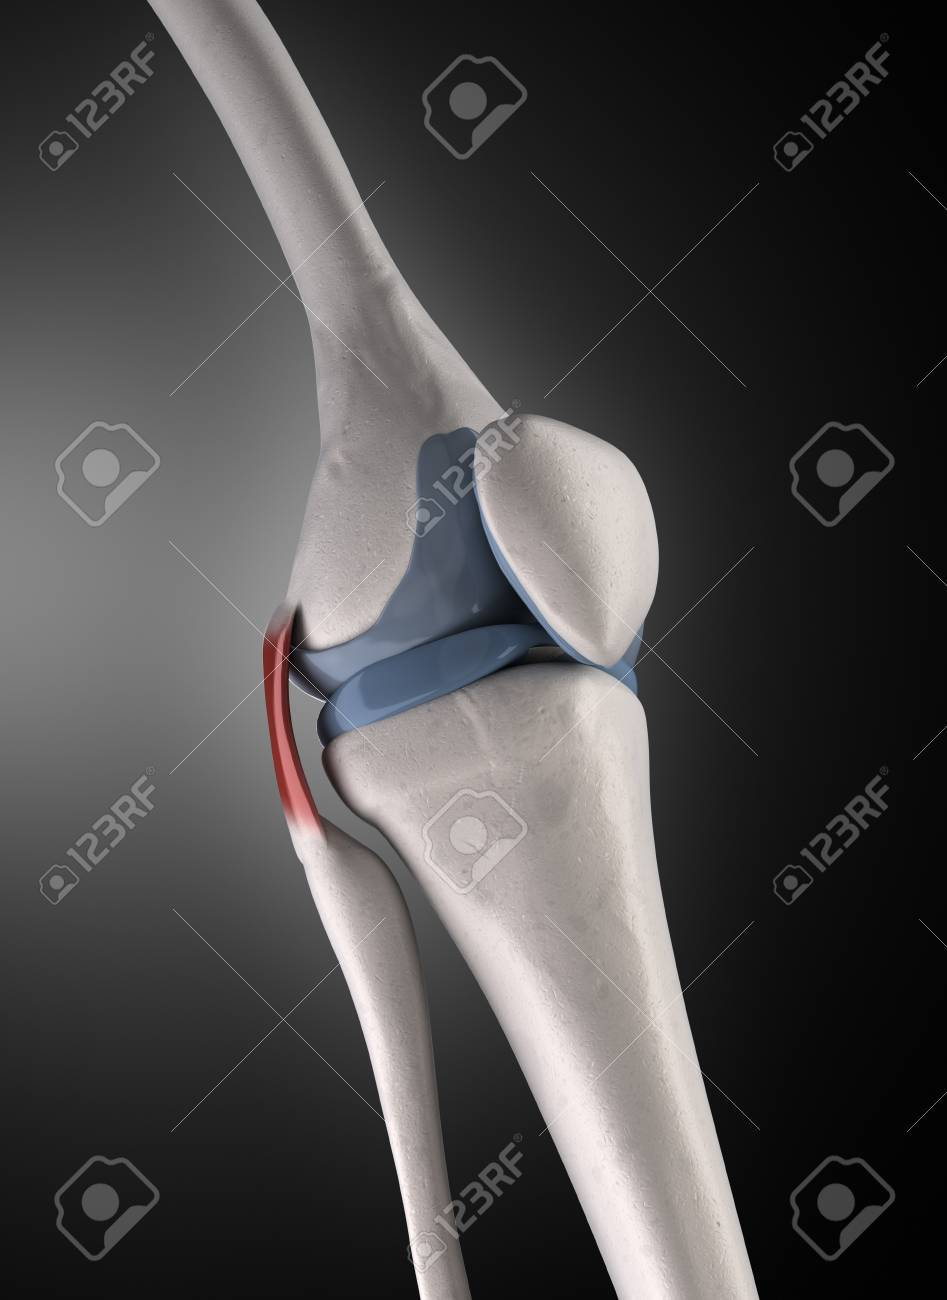 Knee Bone Anatomy Stock Photo, Picture And Royalty Free Image. Image ...